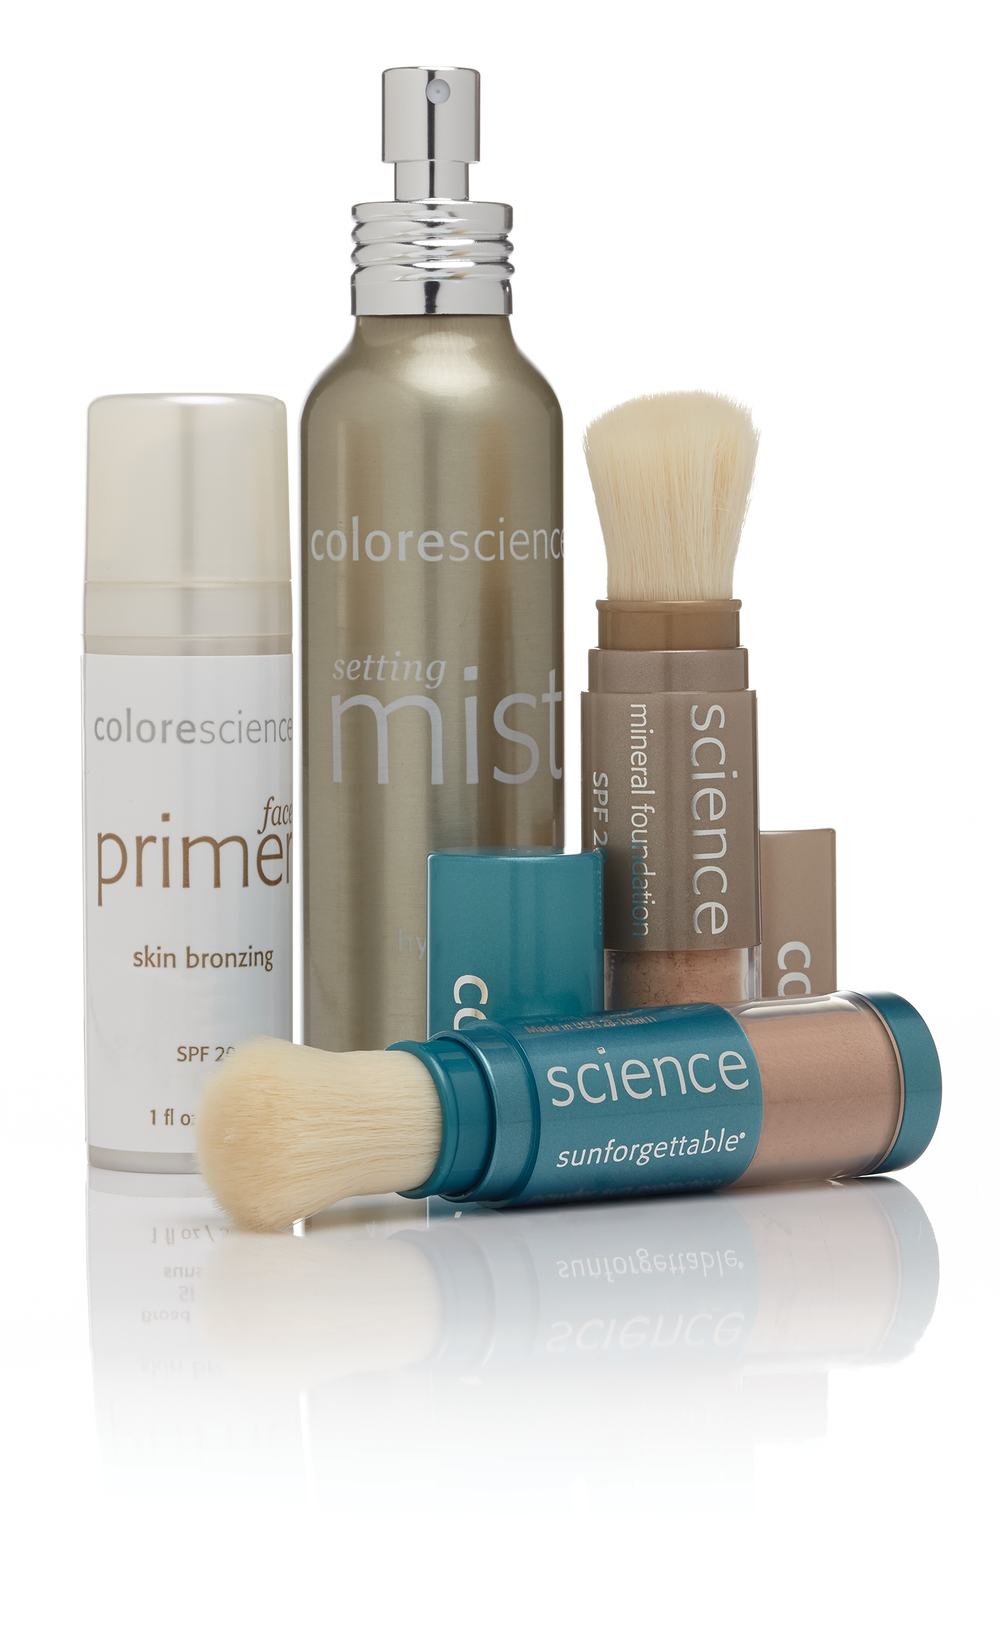 CORE FOUR™ The Colorescience Core Four regimen fuses pure minerals and makeup ingredients that conceal and perfect specific skin concerns, camouflage and cover while offering high levels of sun protection (SPF 20/30/50). Formulated with high-integrity minerals and efficacious ingredients, the Core Four features essential layers to prime, correct, set and finish.